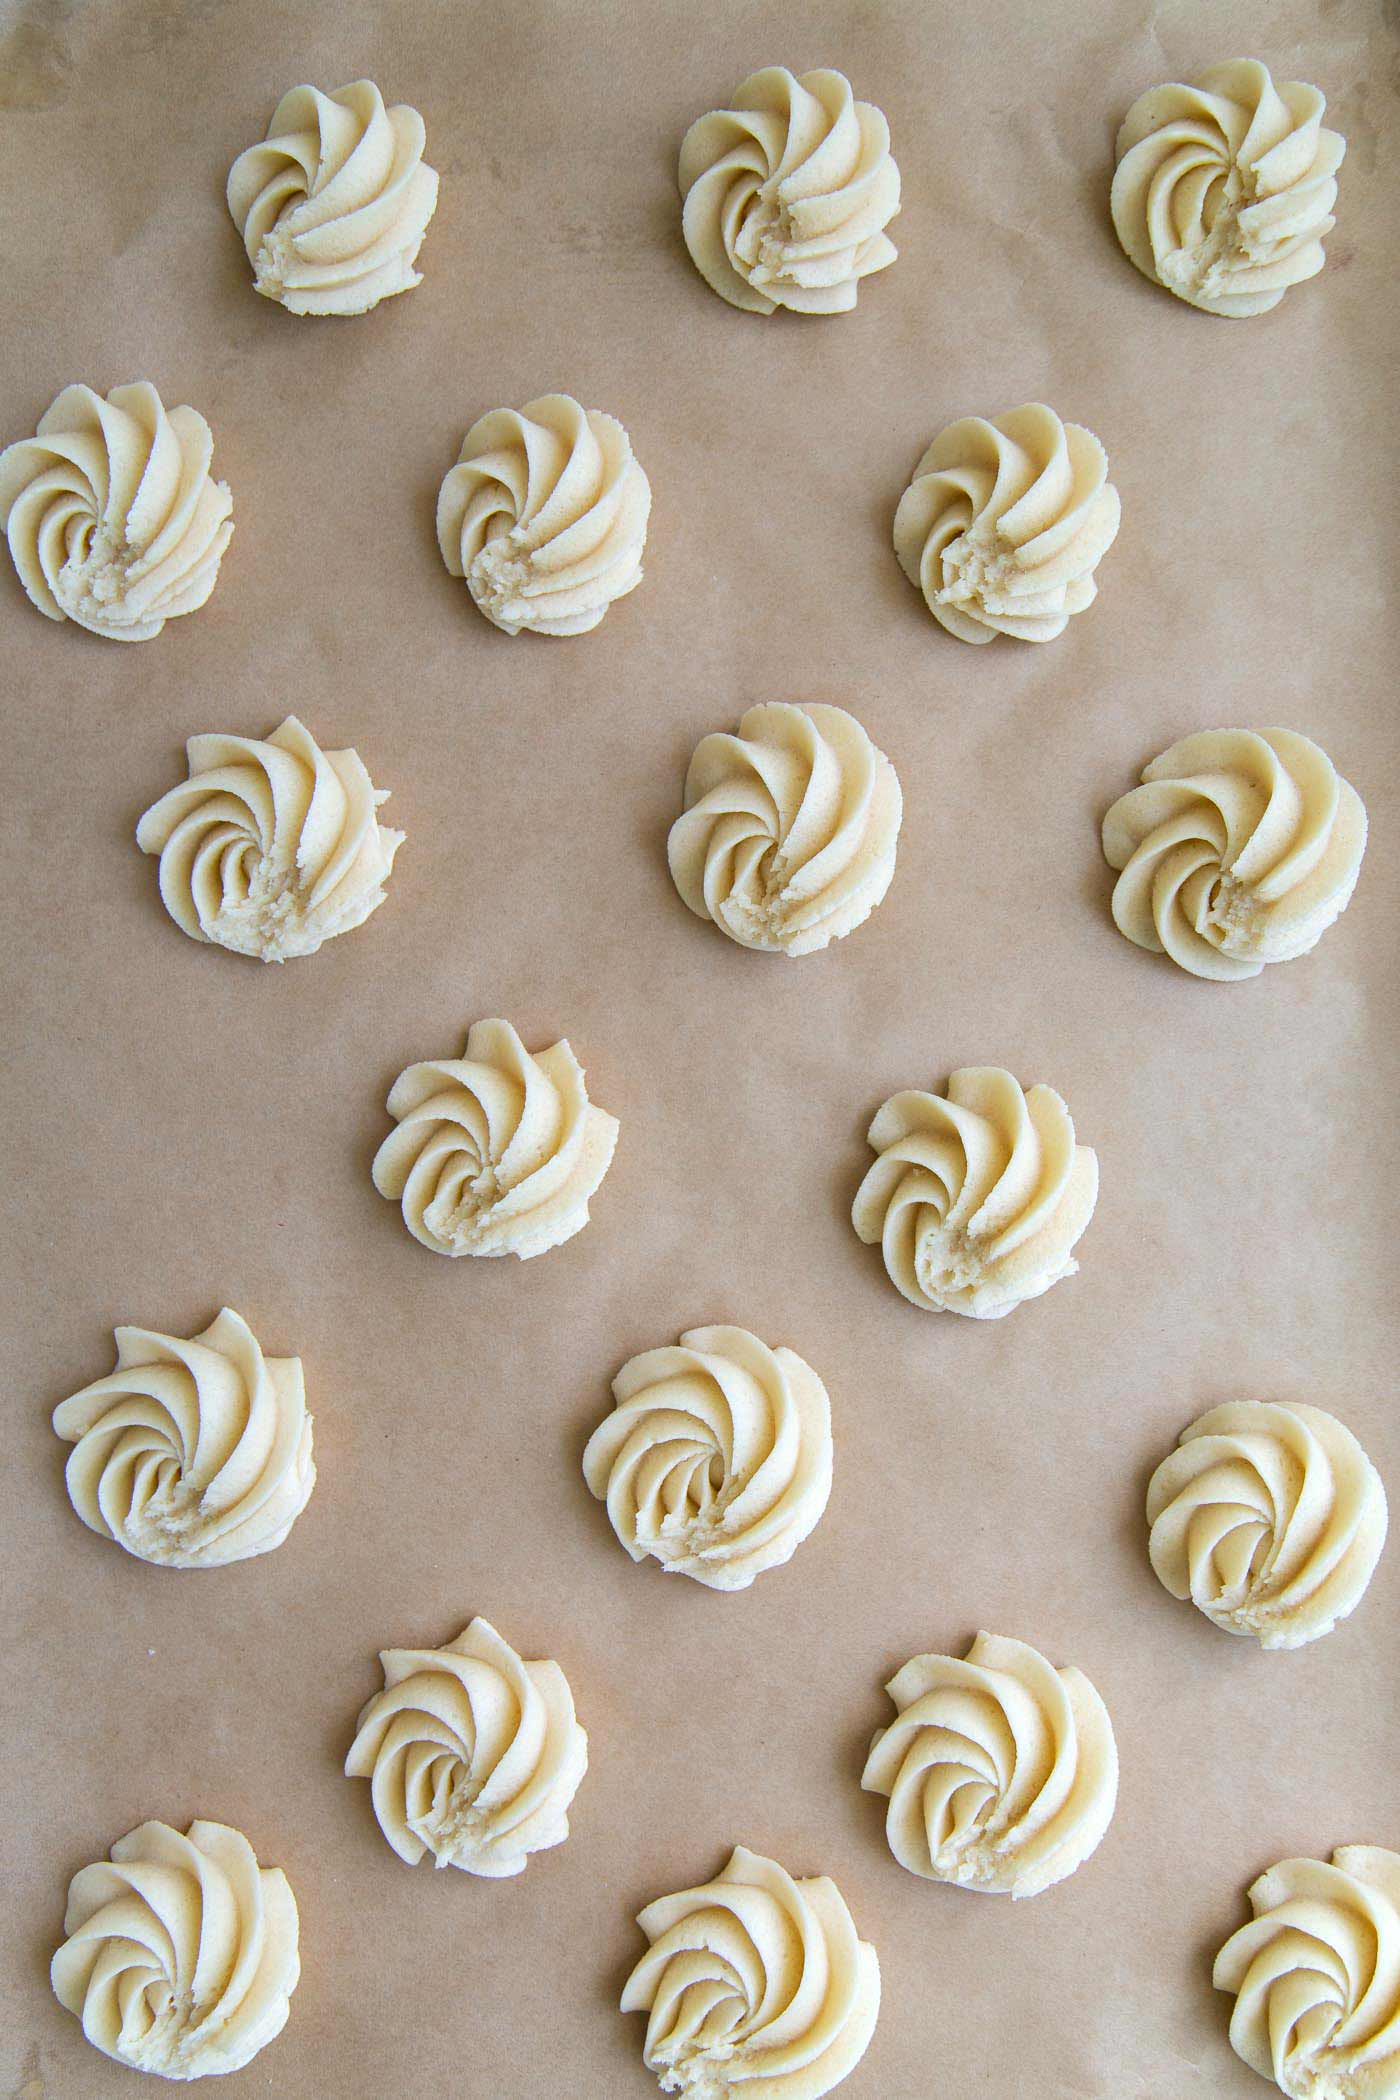 piped Danish butter cookies